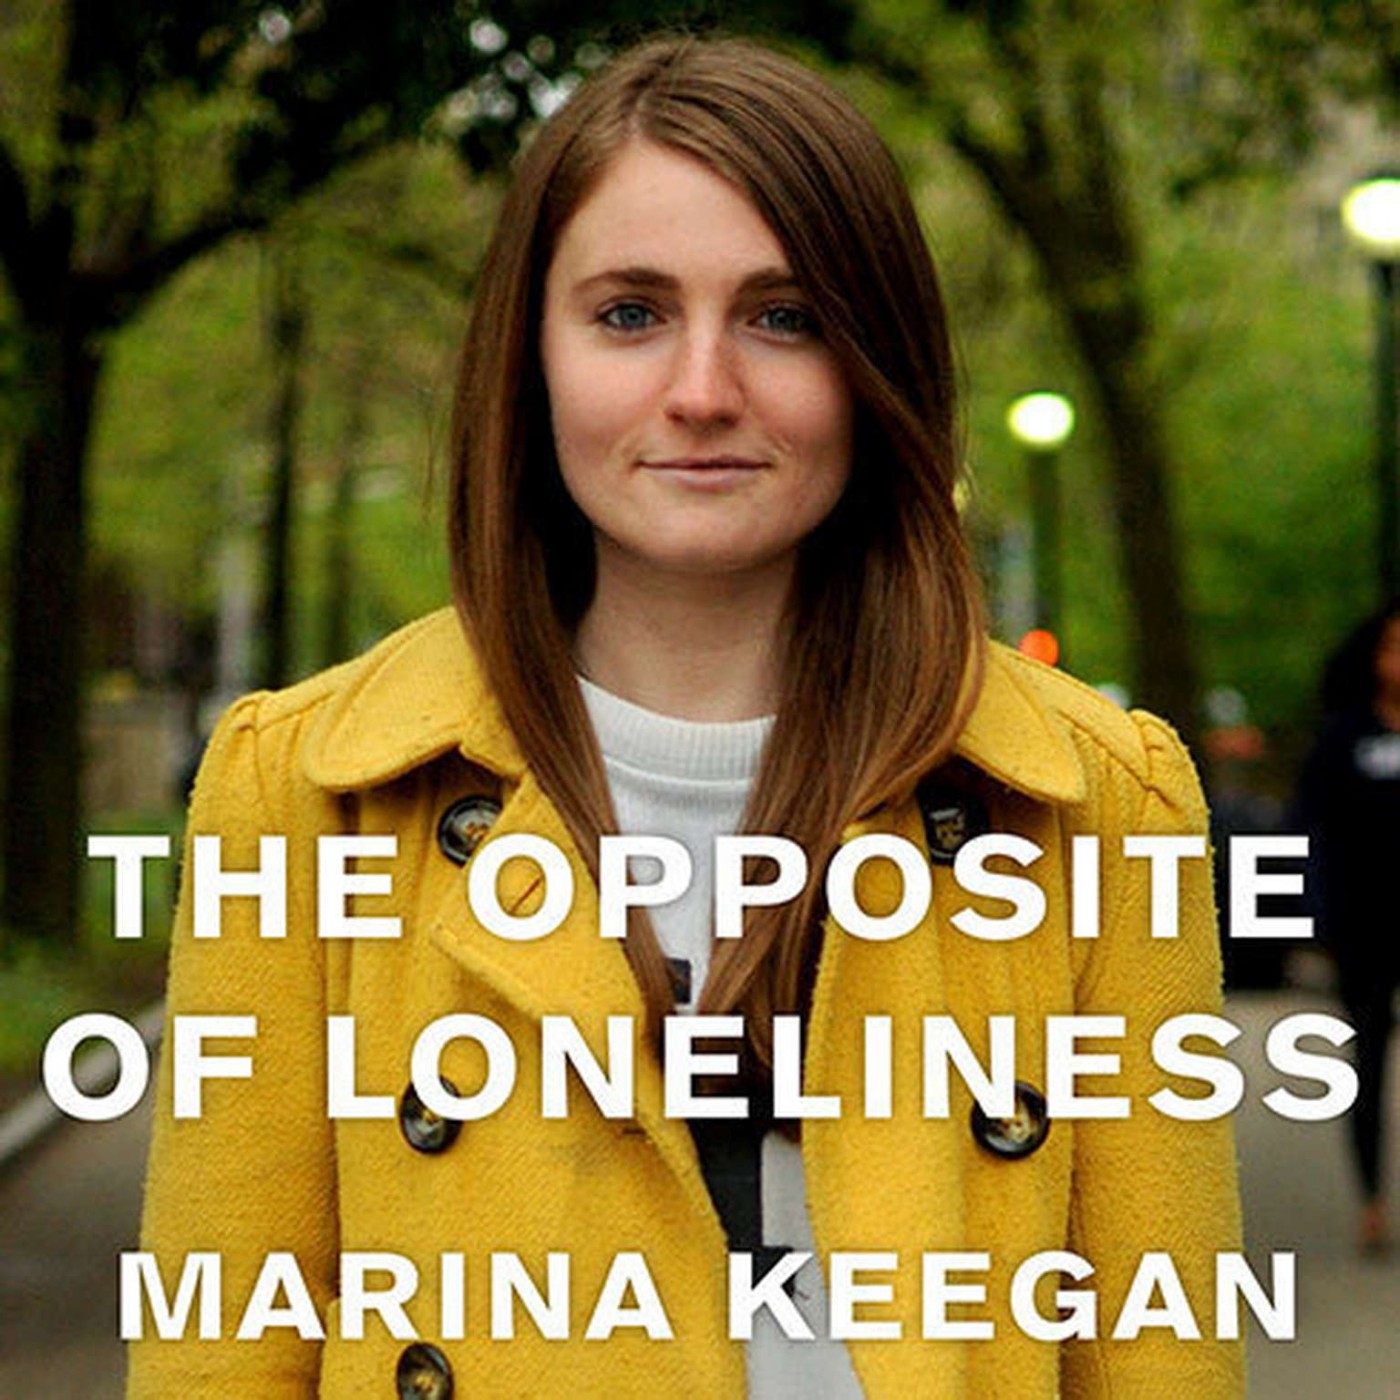 006 The Opposite Of Loneliness Essay Example Bqfu Square Fascinating Book Essays And Stories 1400